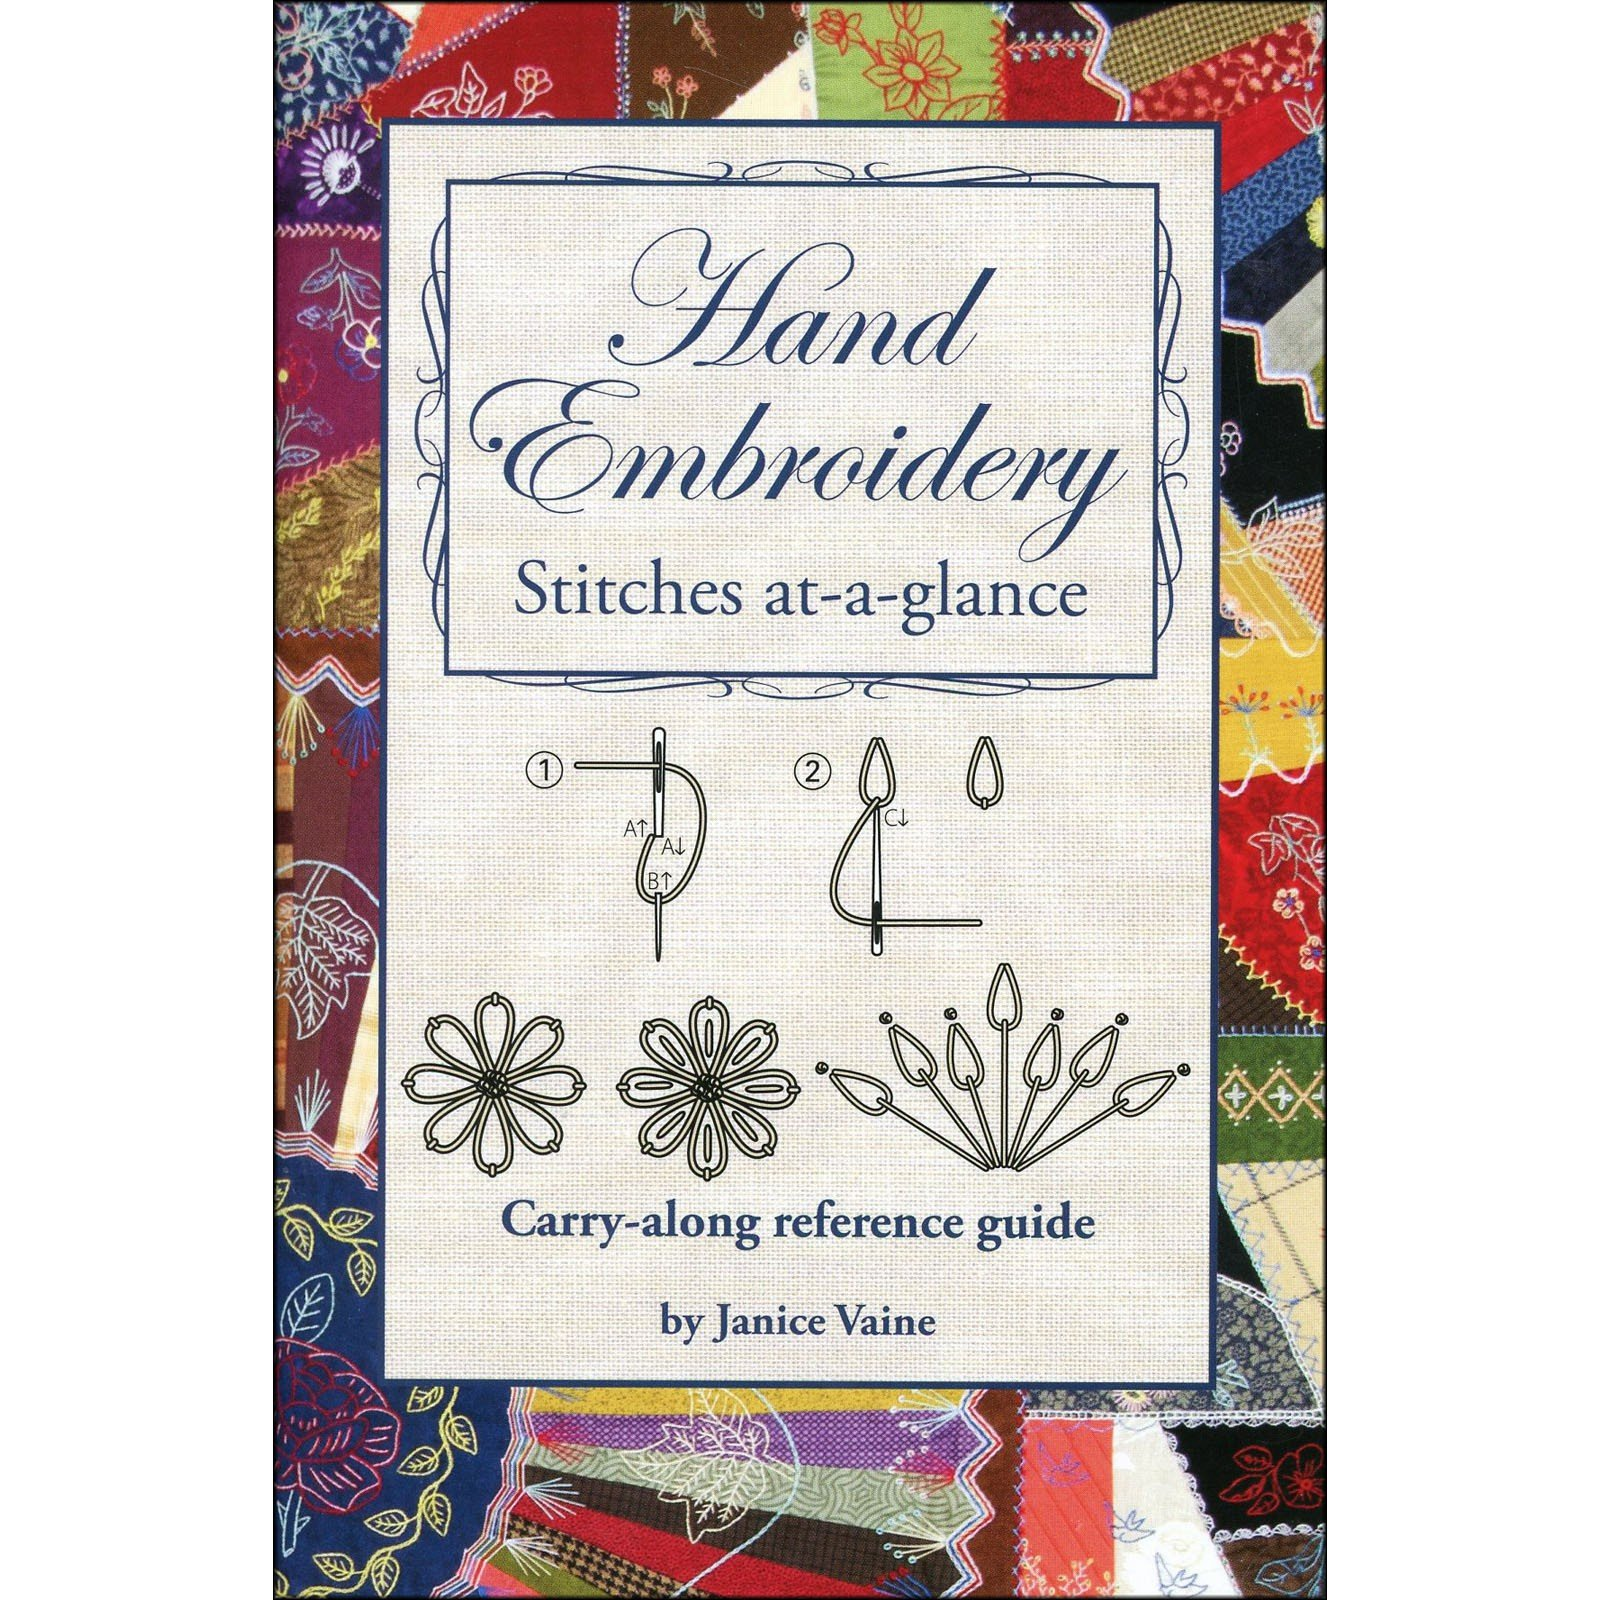 Hand Embroidery - Stitches at a Glance<br/>Janice Vaine